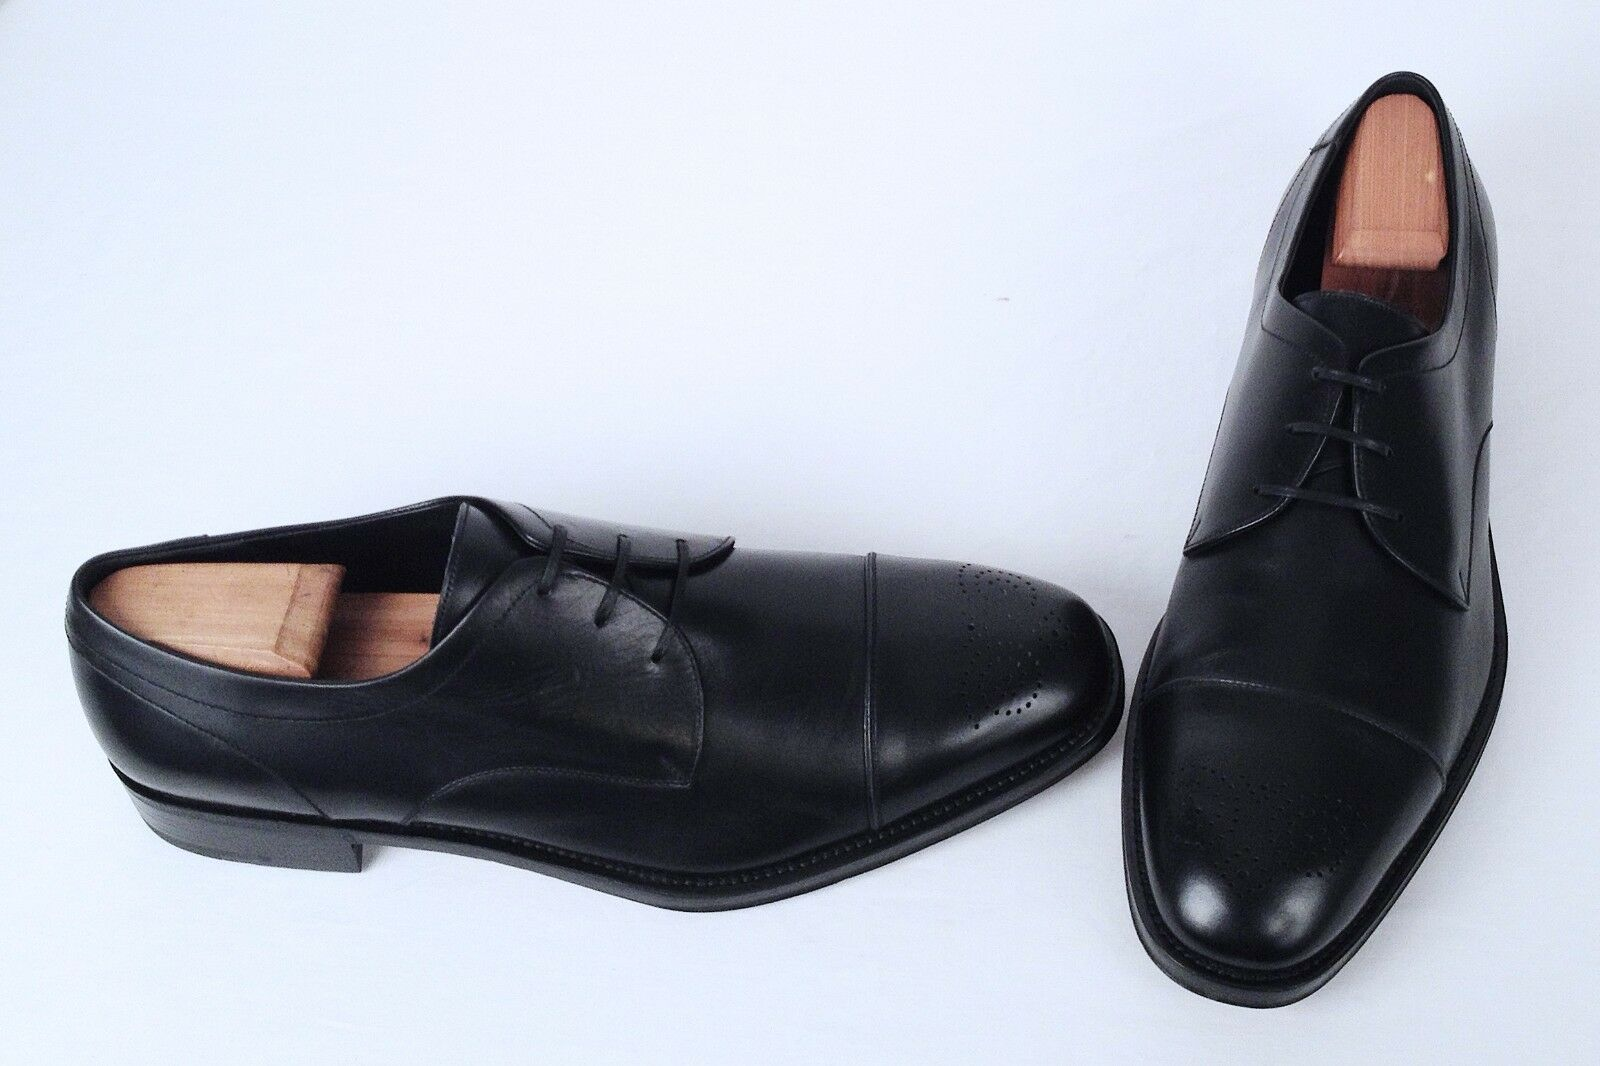 Salvatore Ferragamo Medallion Cap Toe Oxford- Black Calf- Size 12 D   850 (M7)